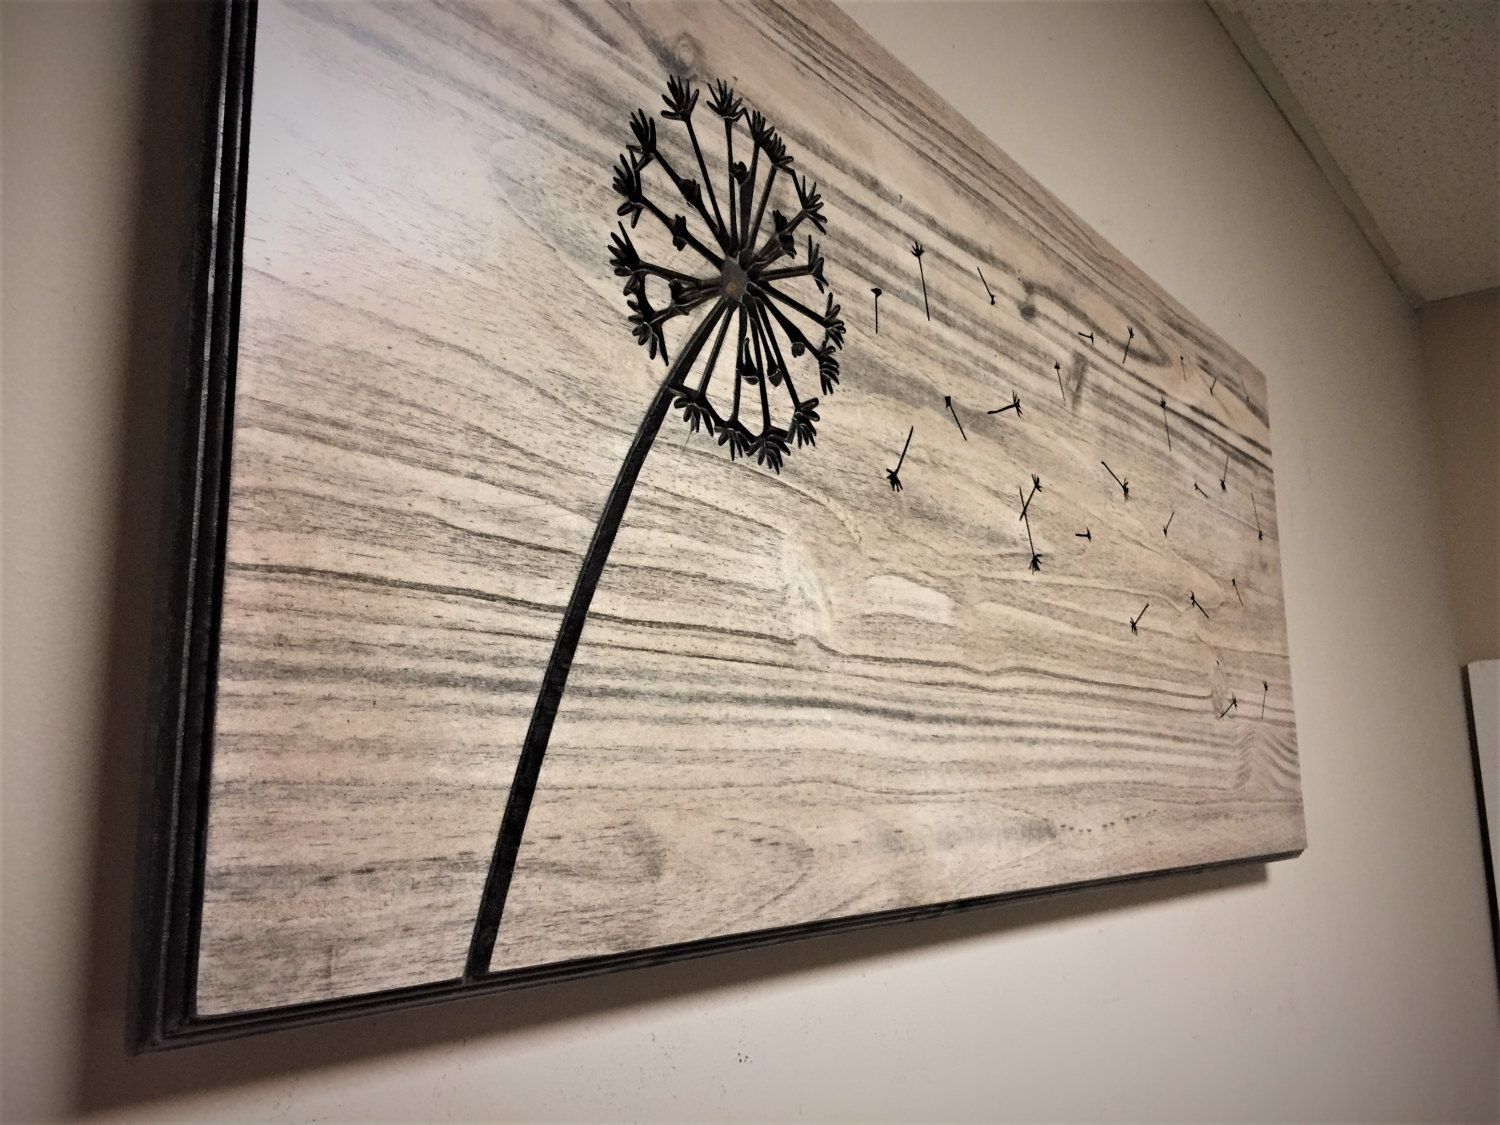 Dandelion Wall Art, Carved, Wood Wall Art, Home Decorhowdyowl On With Most Recent Dandelion Wall Art (View 17 of 20)